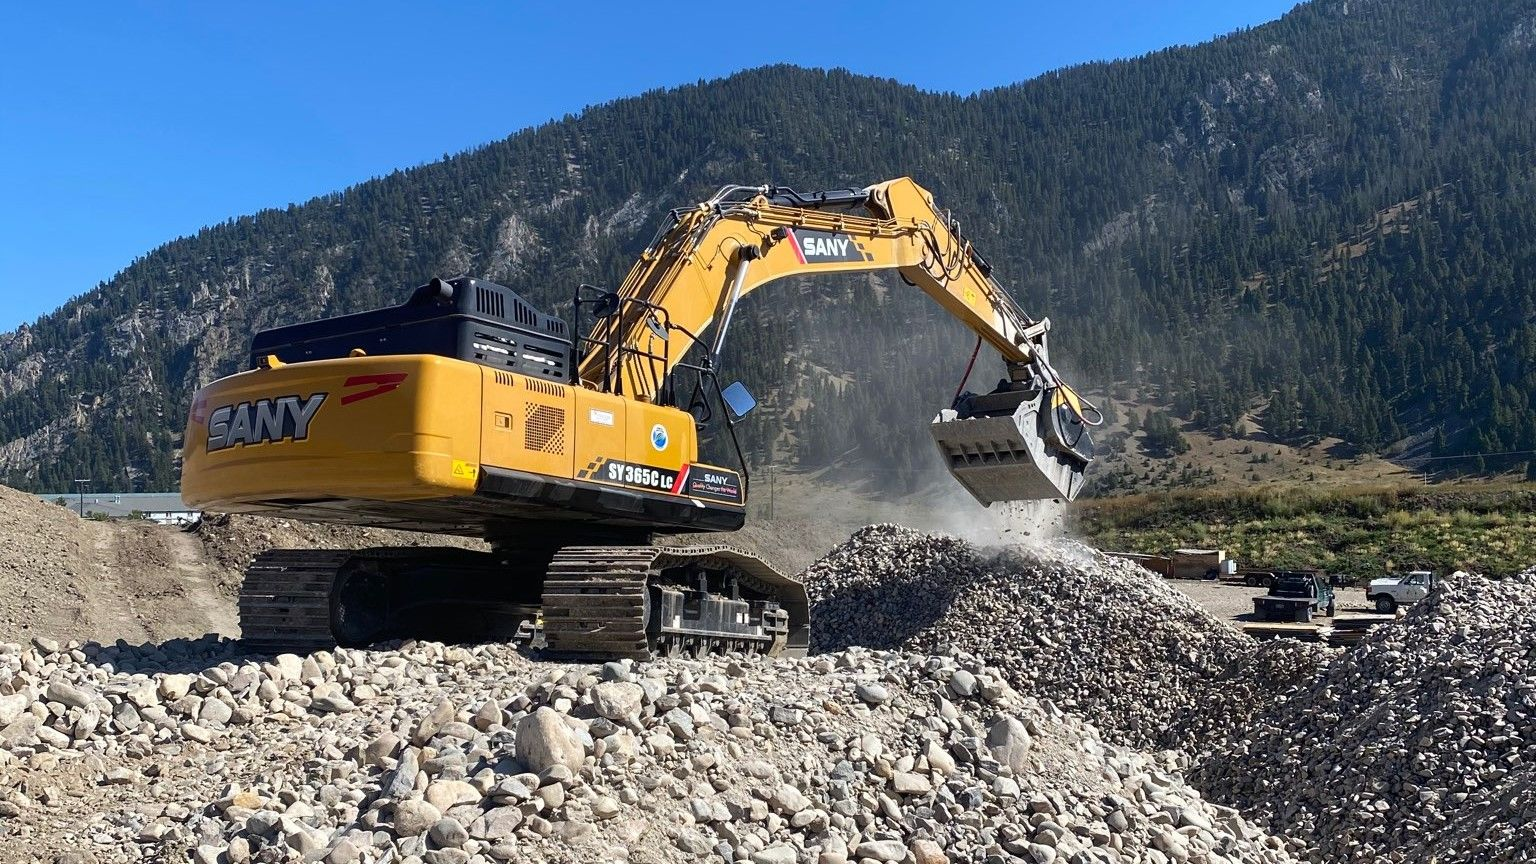 MB Crusher Bucket at work for BSLM